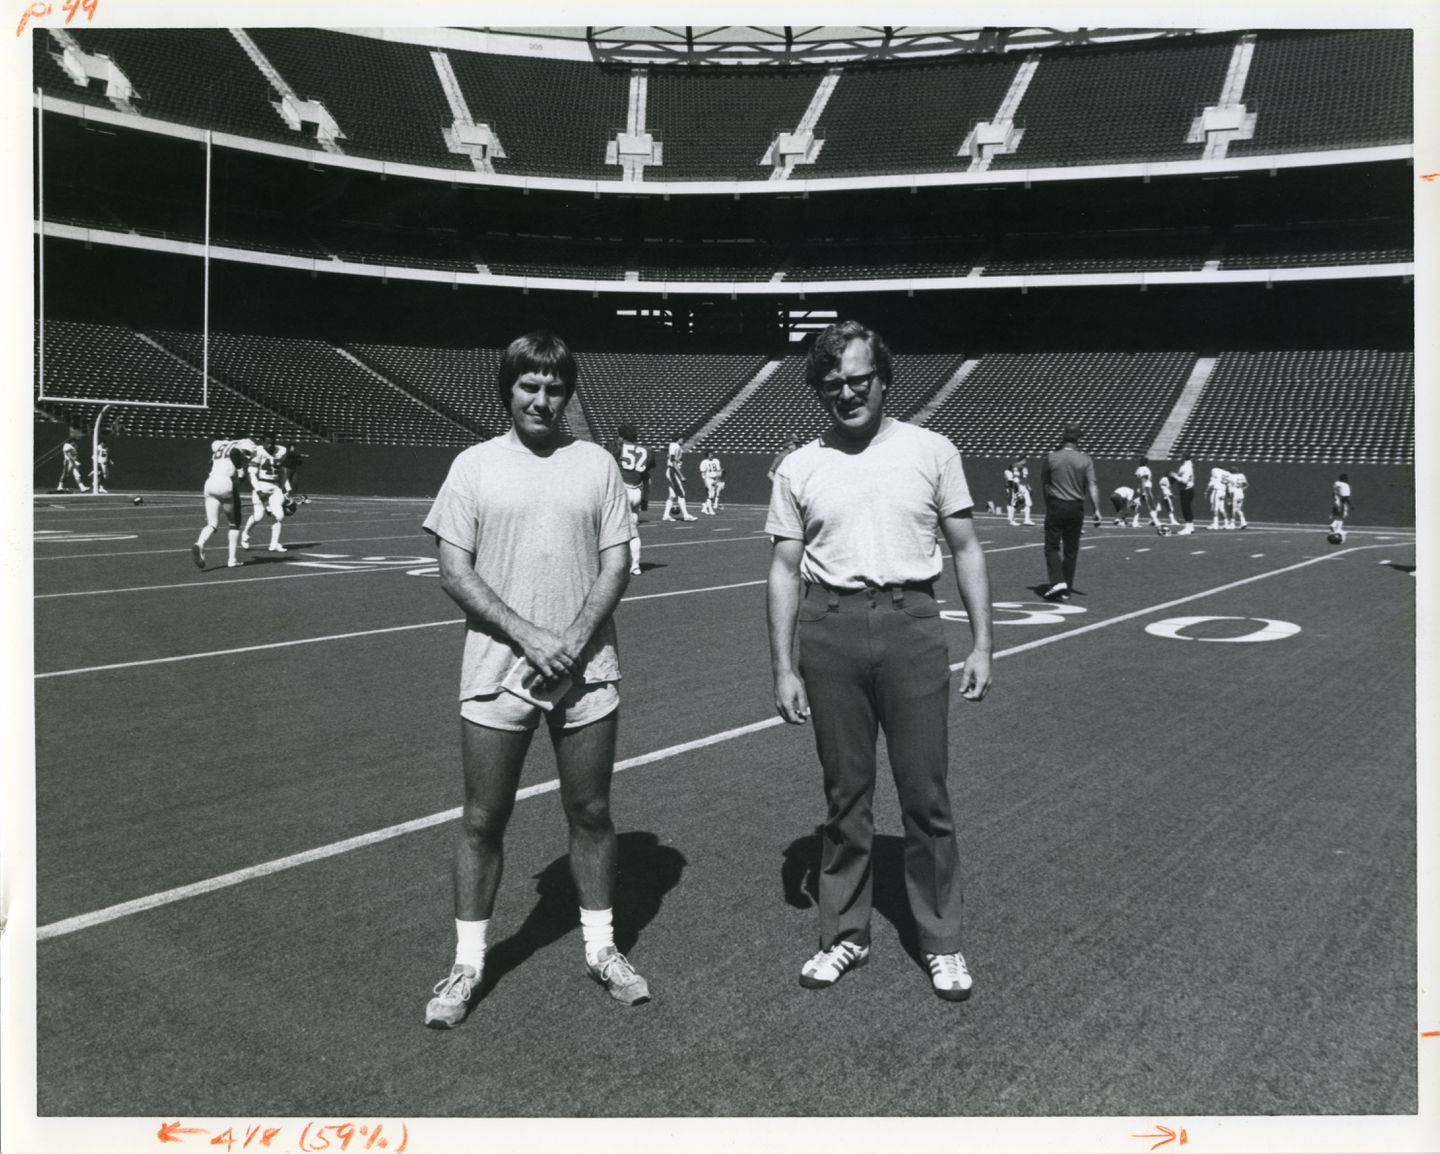 Bill Belichick (left) and Ernie Adams (right).